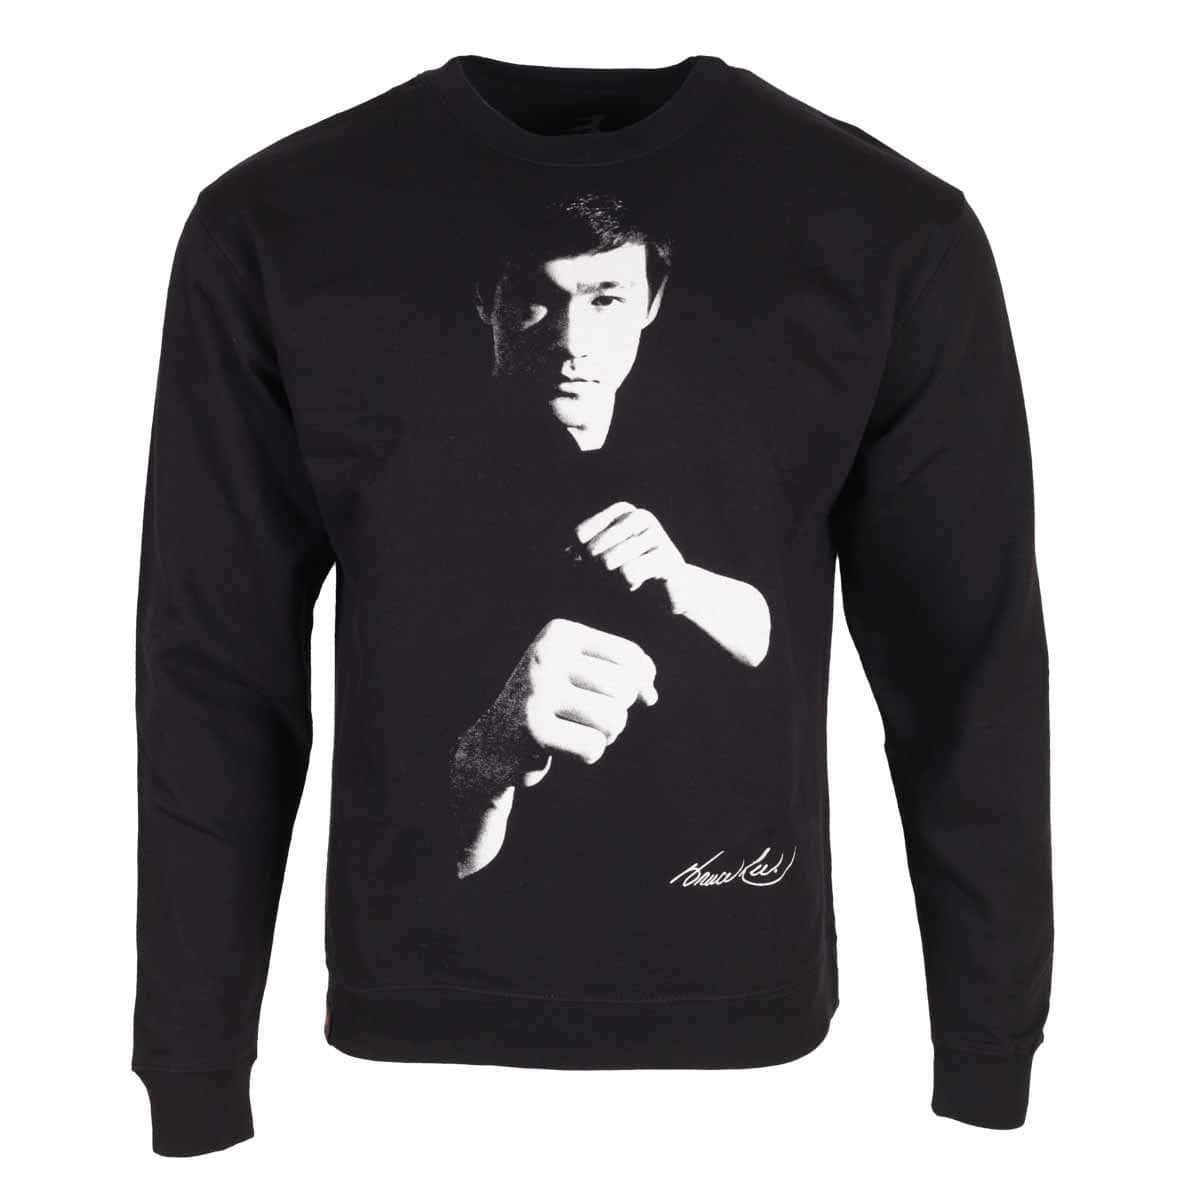 The Tao Crewneck Sweatshirt